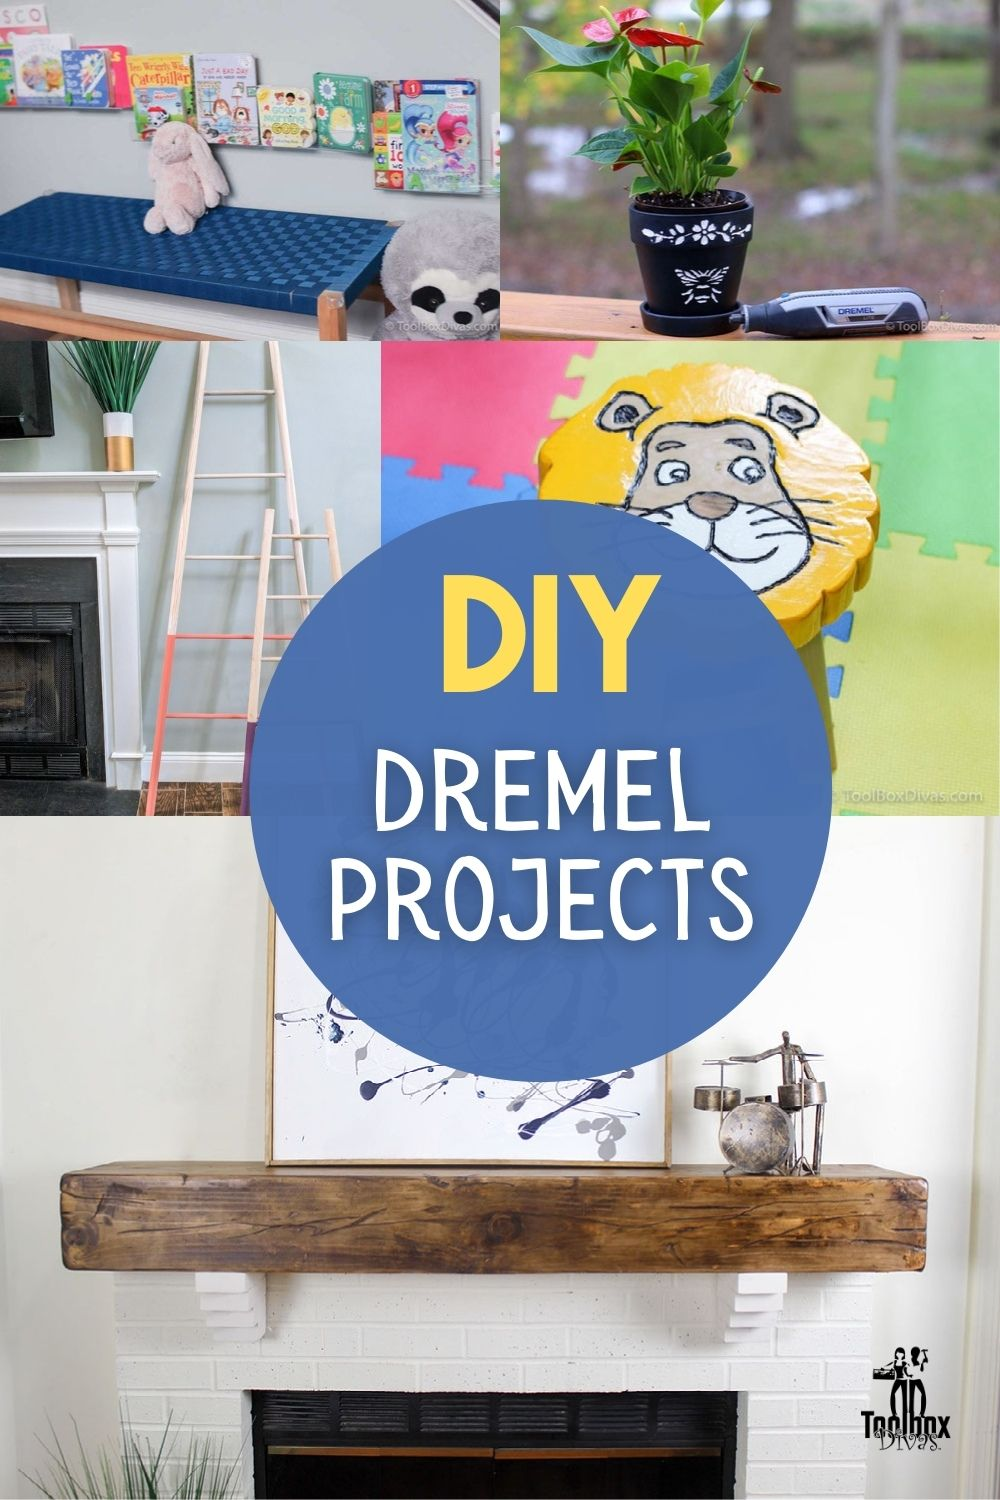 image collage of DIY Dremel projects with text overlay